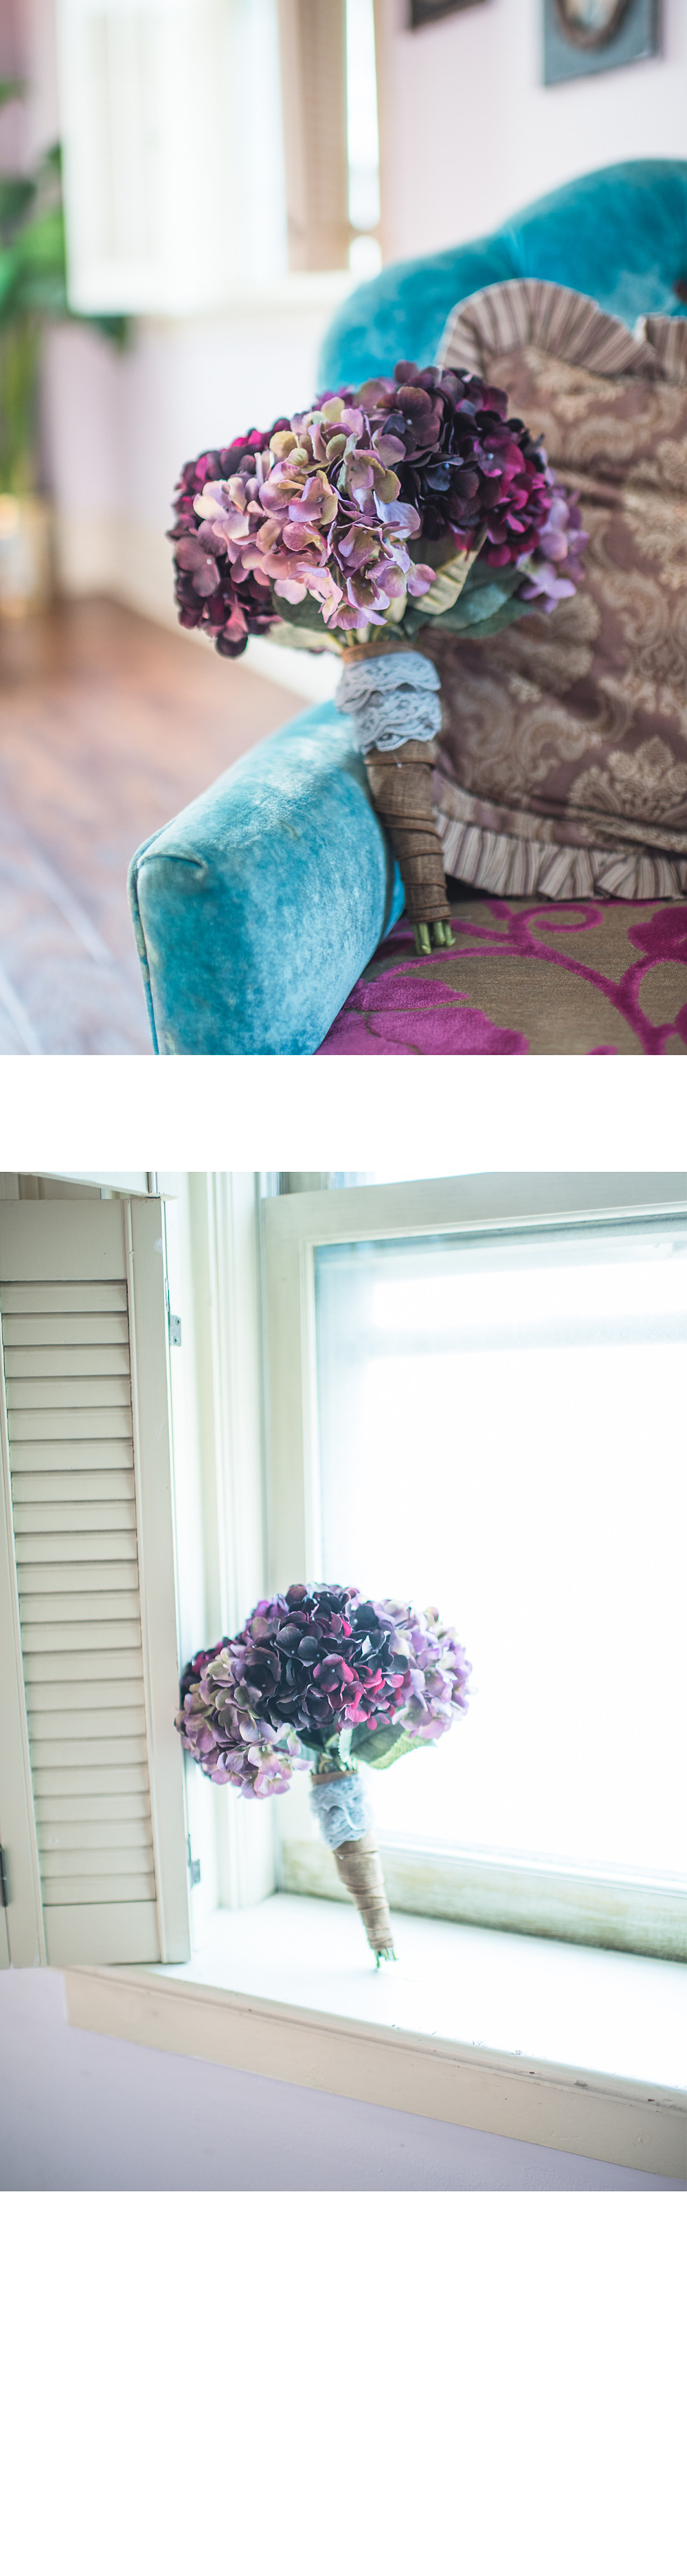 Shakespeare and Co. Lexington, Kentucky Wedding Photographer Erin And Joel Purple, Mint, Blush Gold and Vintage Victorian Glam Venue Shabby Chic